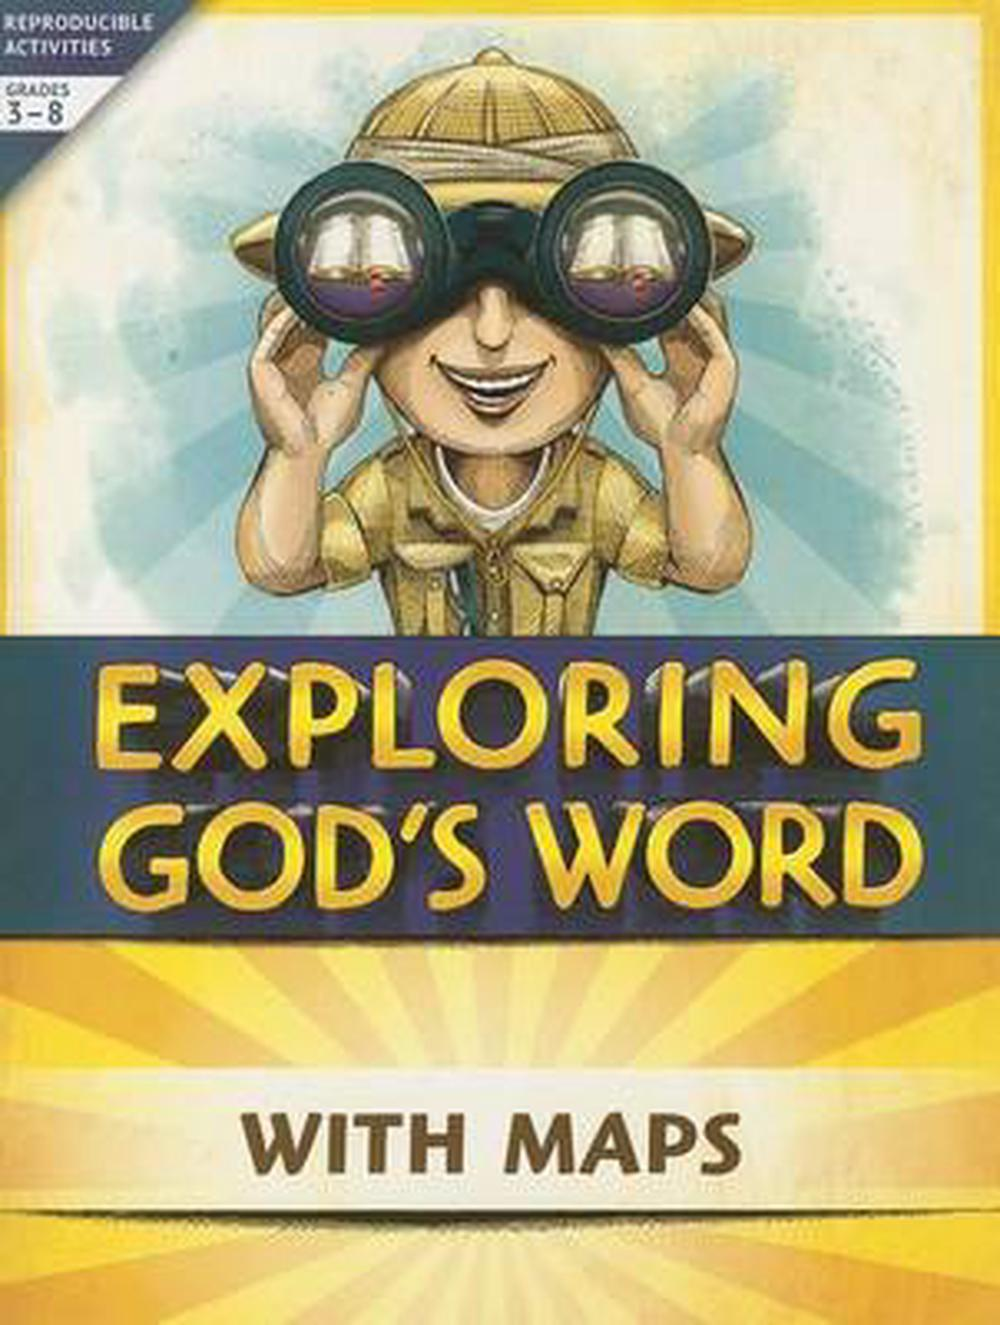 Exploring God's Word with Maps (English) Paperback Book Free Shipping!